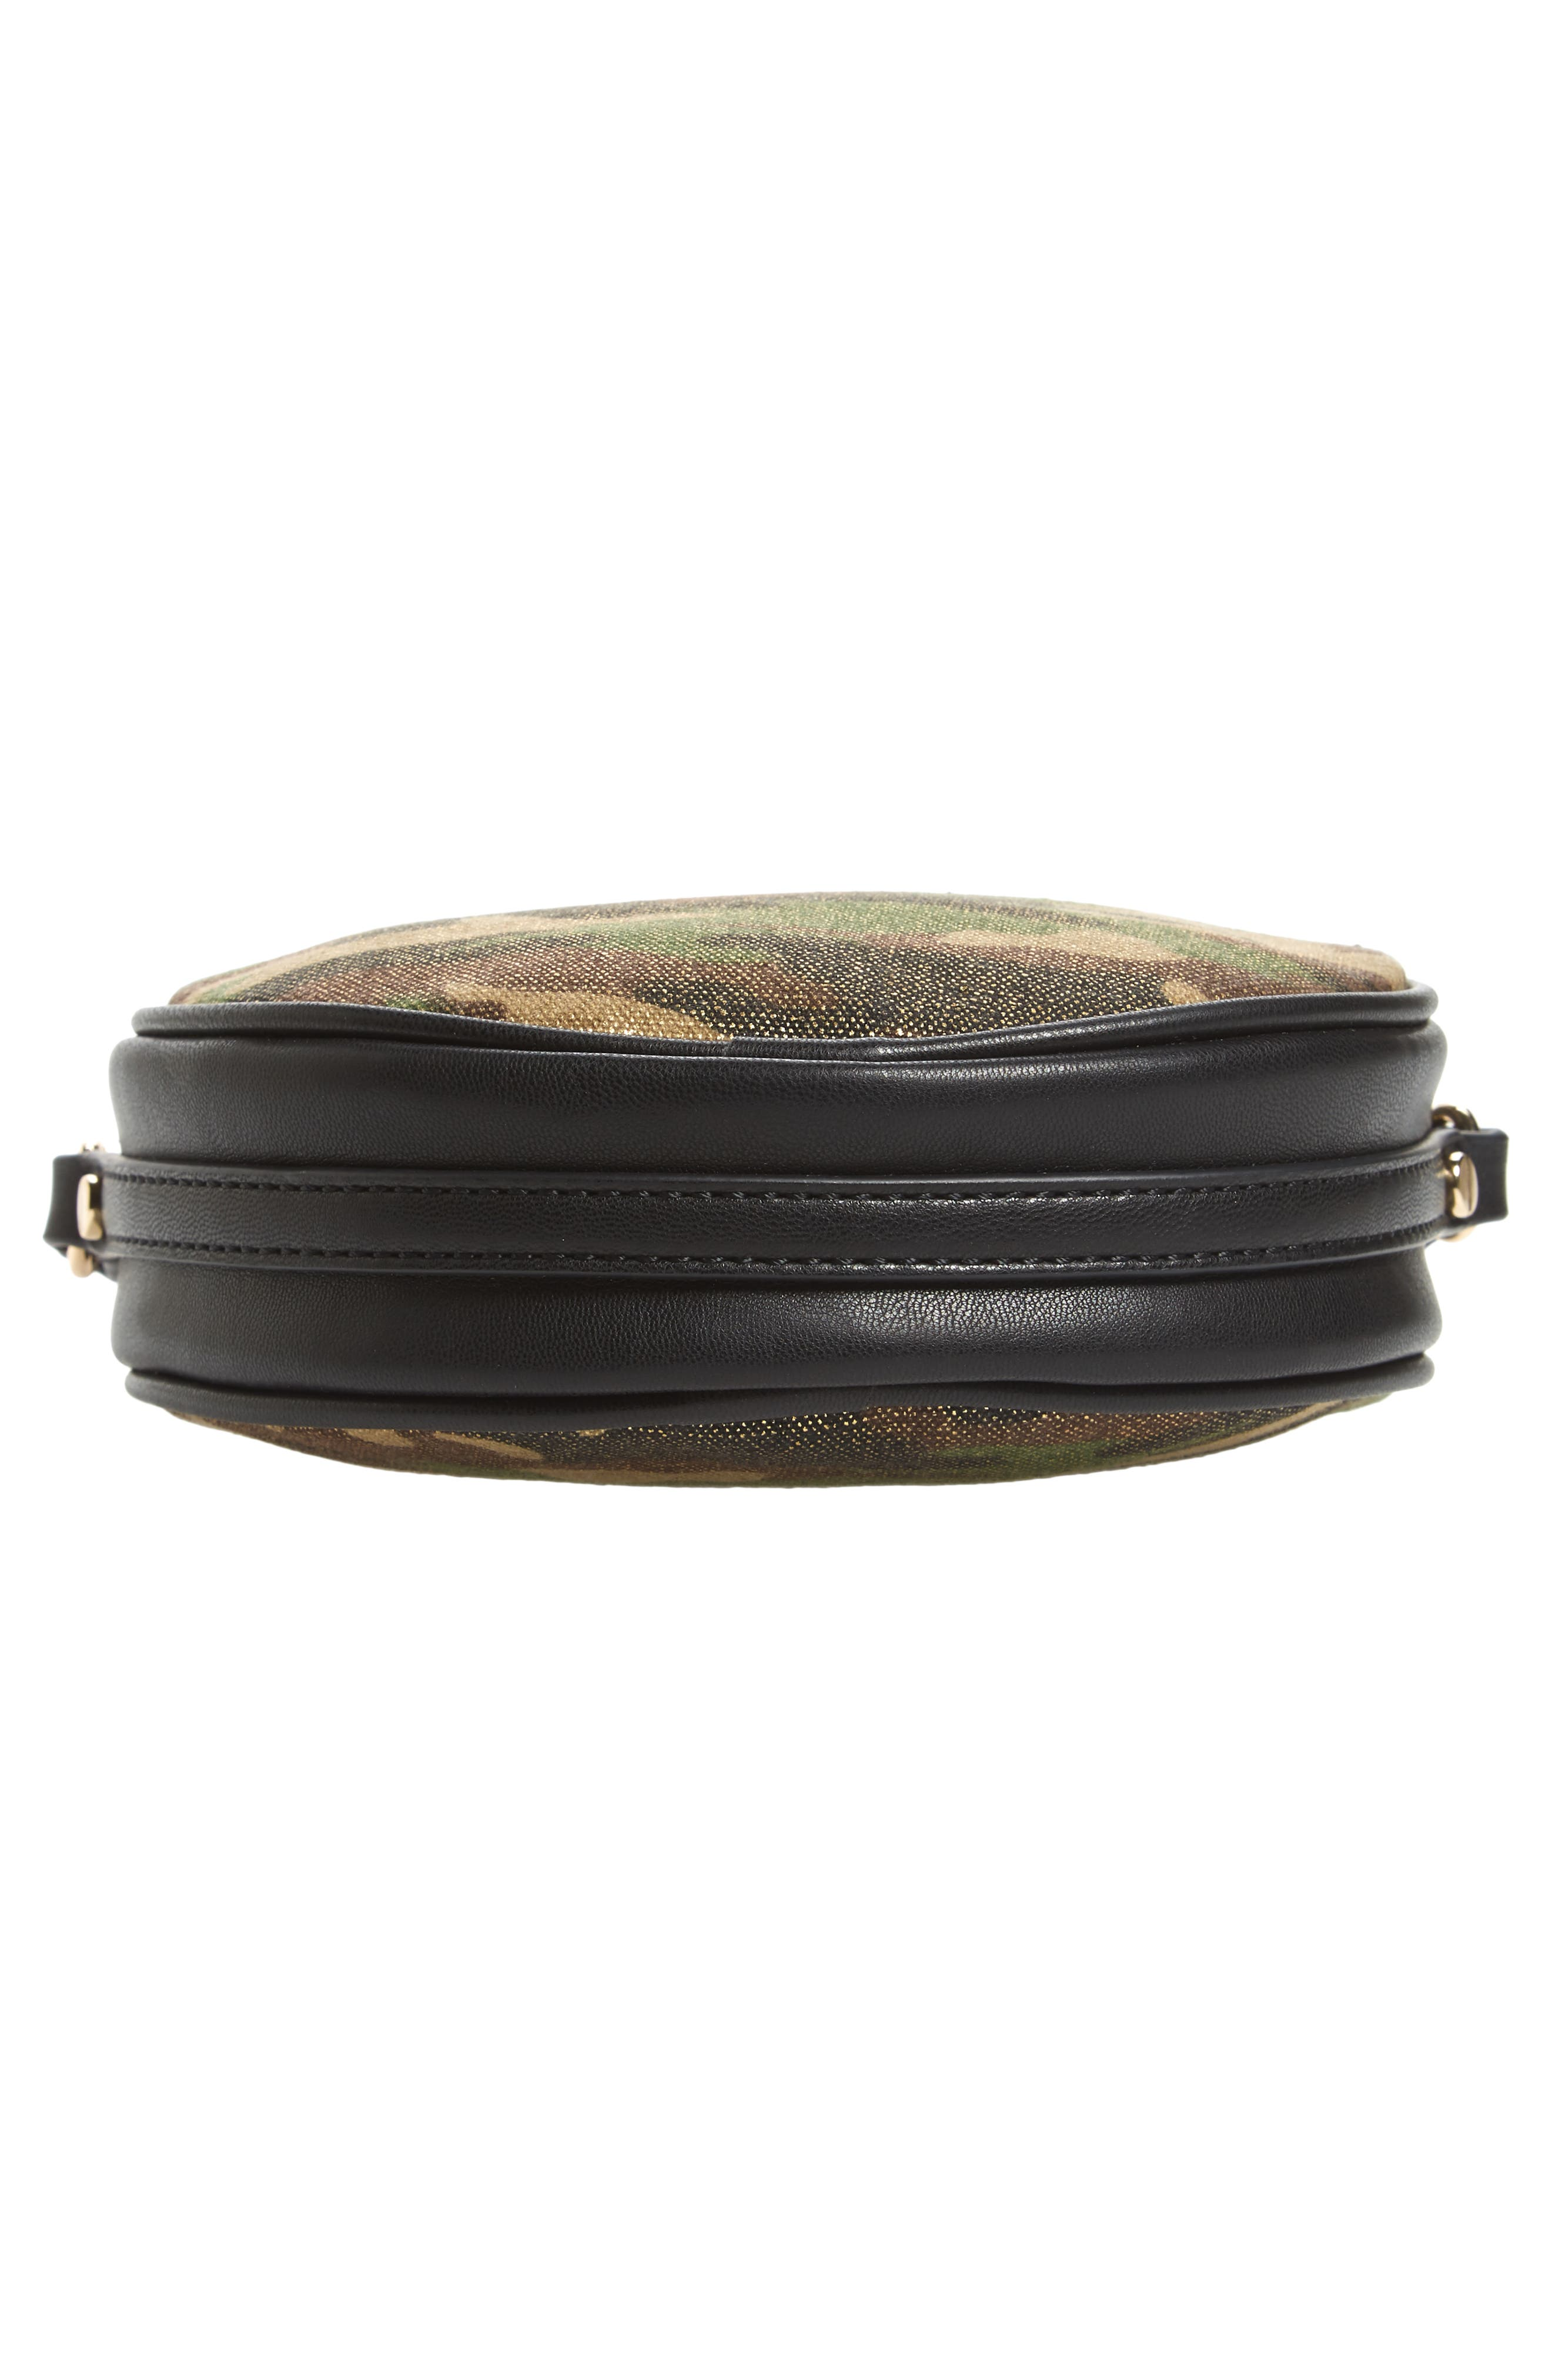 Mali + Lili Camouflage Vegan Leather Canteen Crossbody Bag,                             Alternate thumbnail 6, color,                             Camouflage